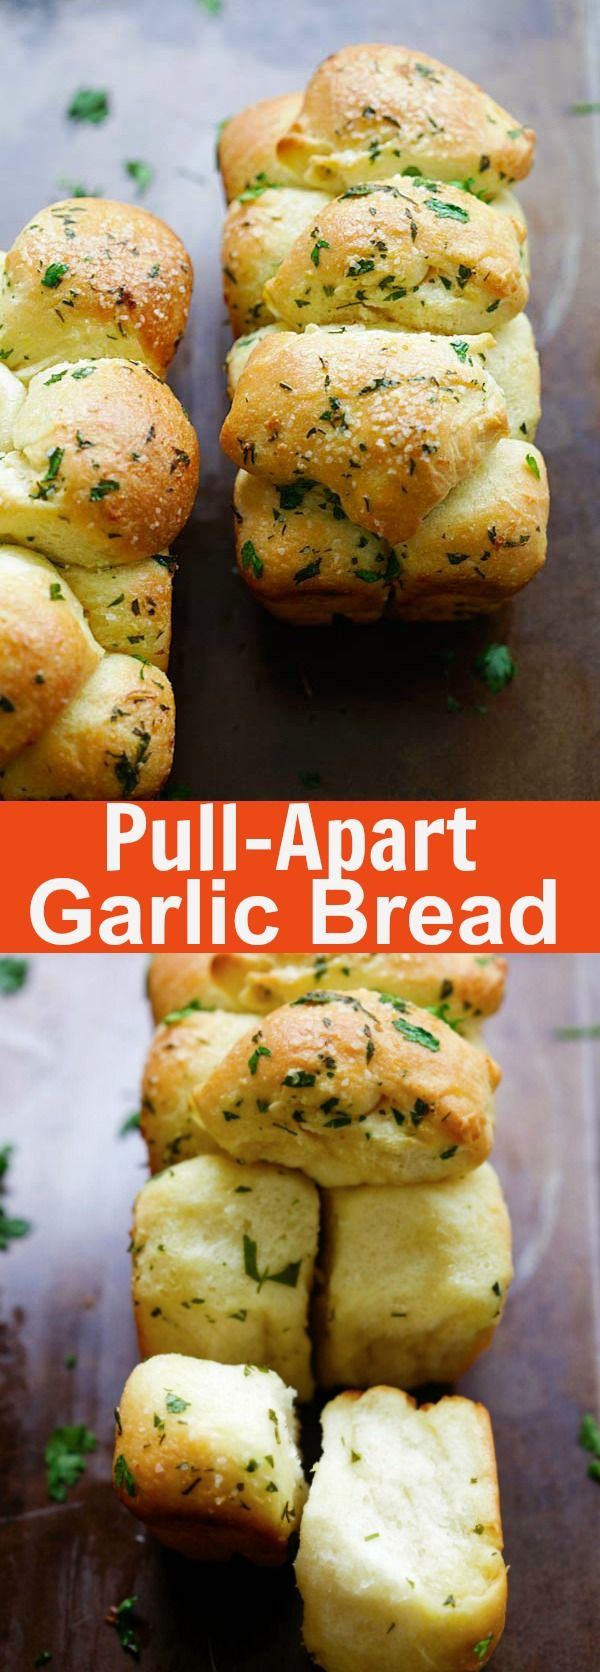 Pull Apart Garlic Bread – homemade pull apart garlic bread recipe that is easy, fool proof and yields the softest and best garlic bread ever | rasamalaysia.com